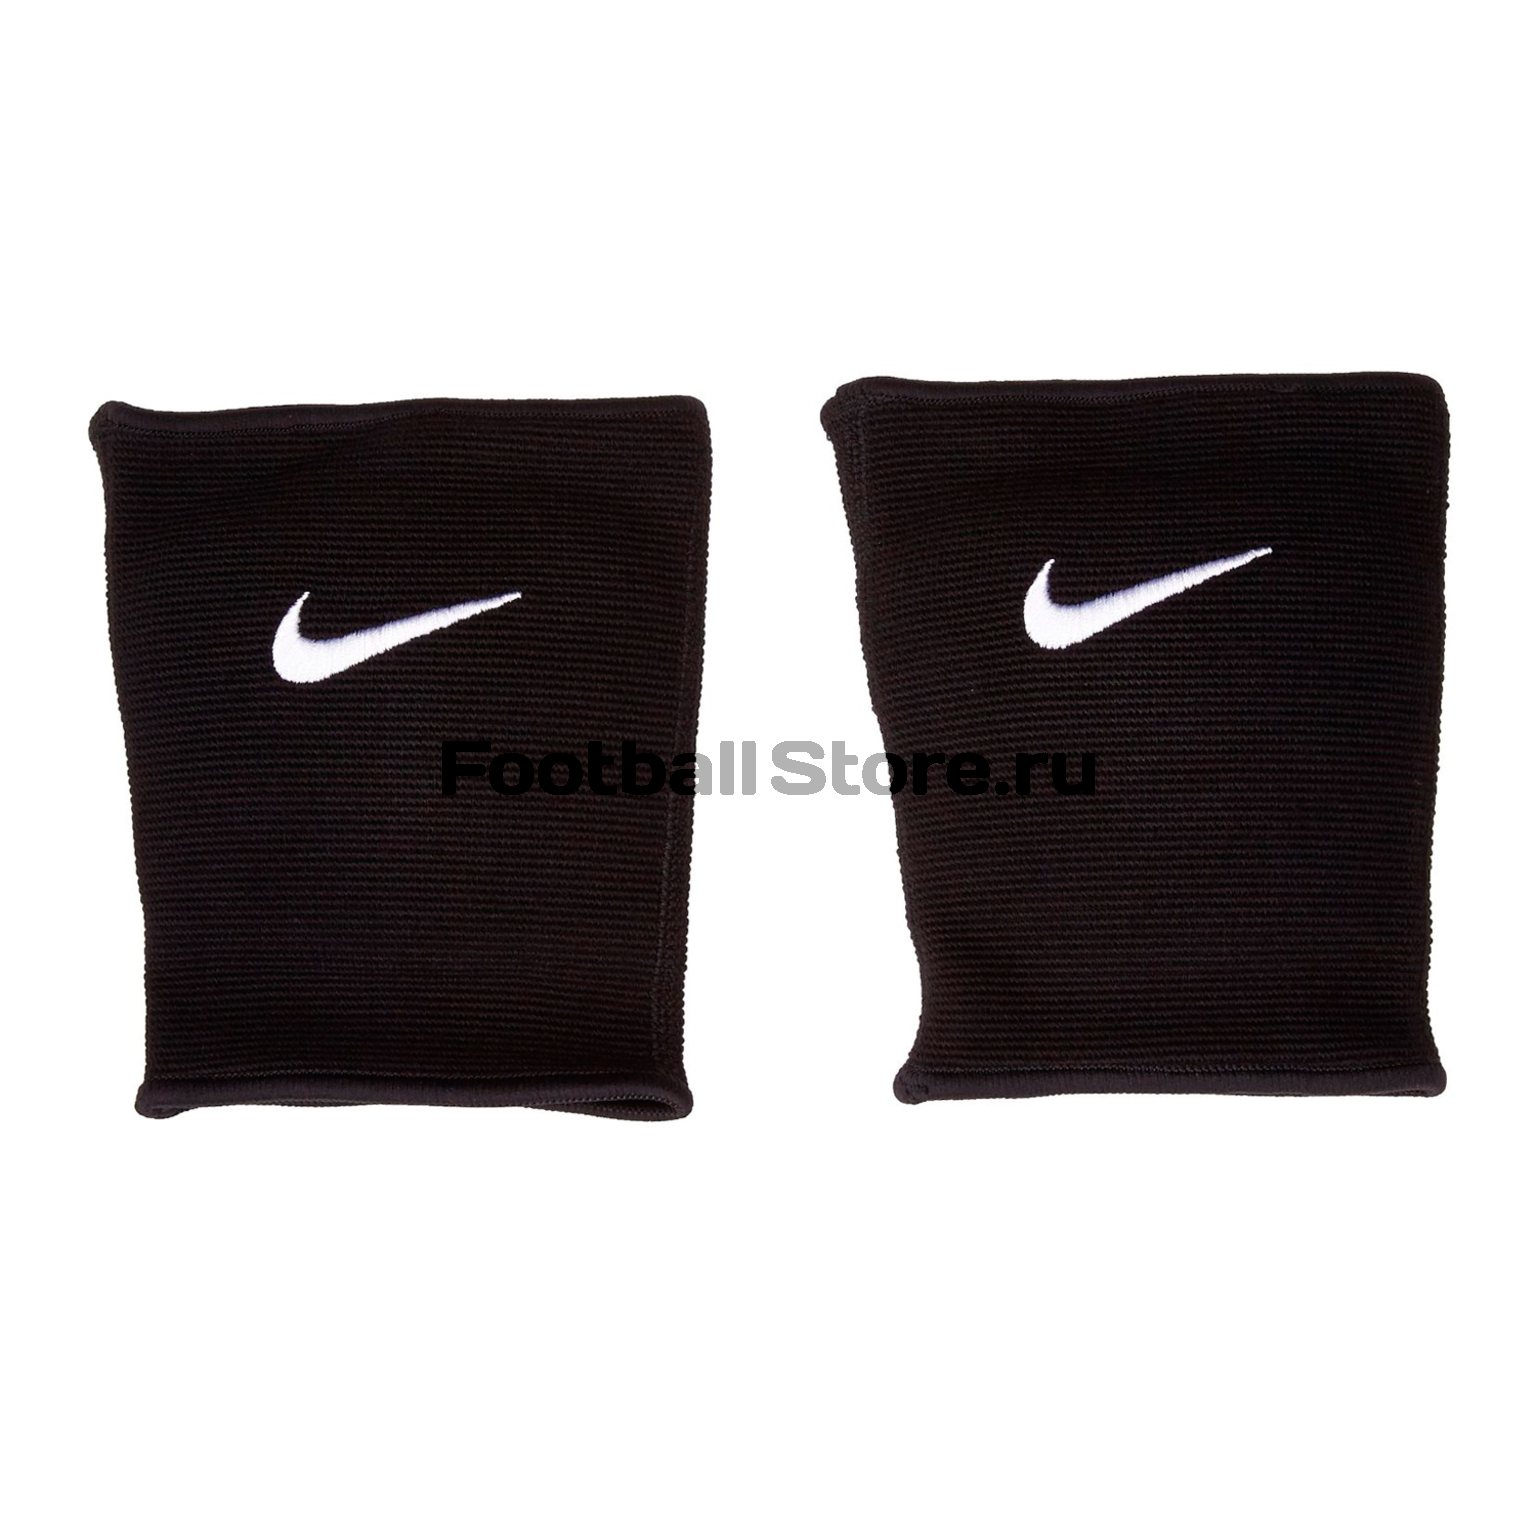 Защита ног Nike Наколенники Nike Essential Volleyball Knee Pad Black N.VP.06.001